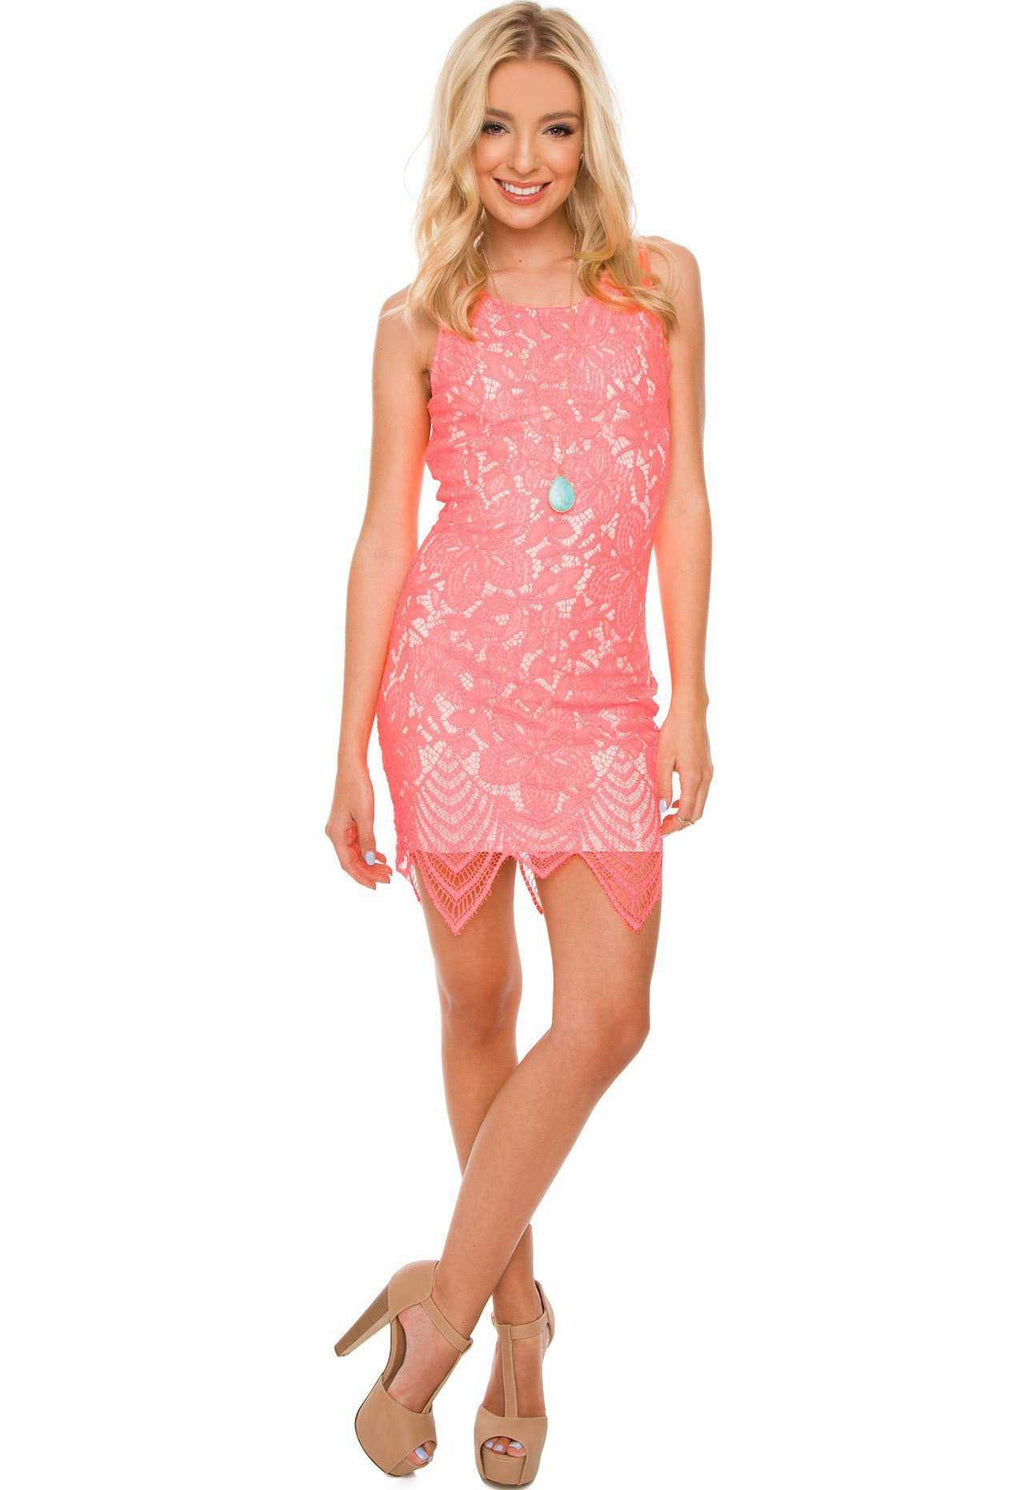 Dresses - Sugar, Sugar Dress - Coral